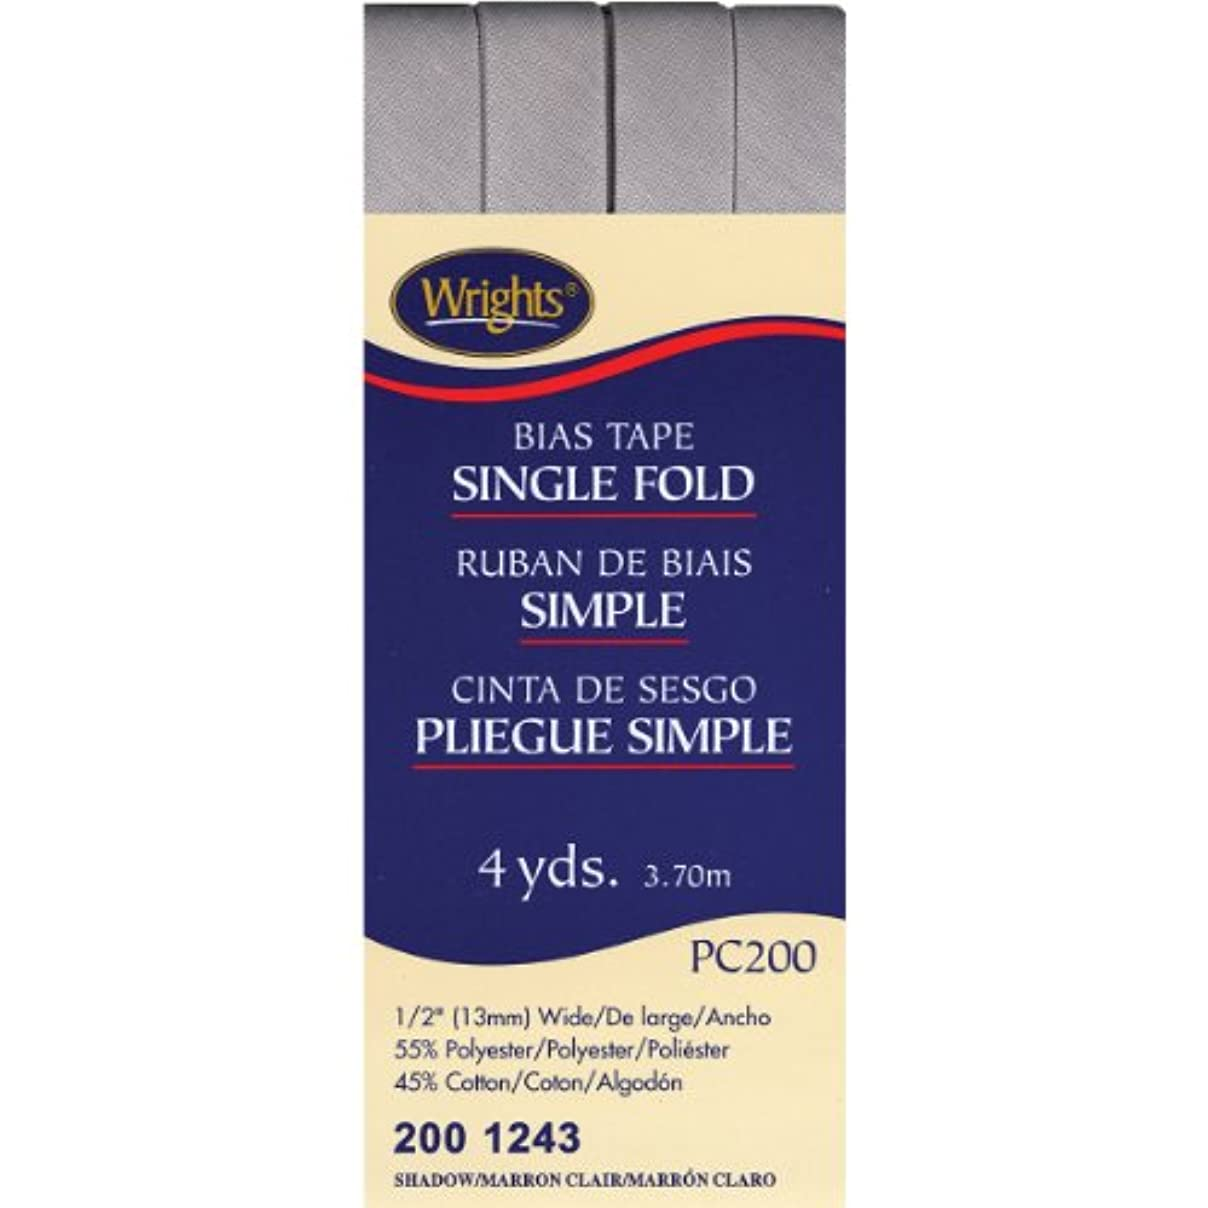 Wright Products 117-200-1243 Wrights Single Fold Bias Tape, 4 yd, Shadow if94495283913